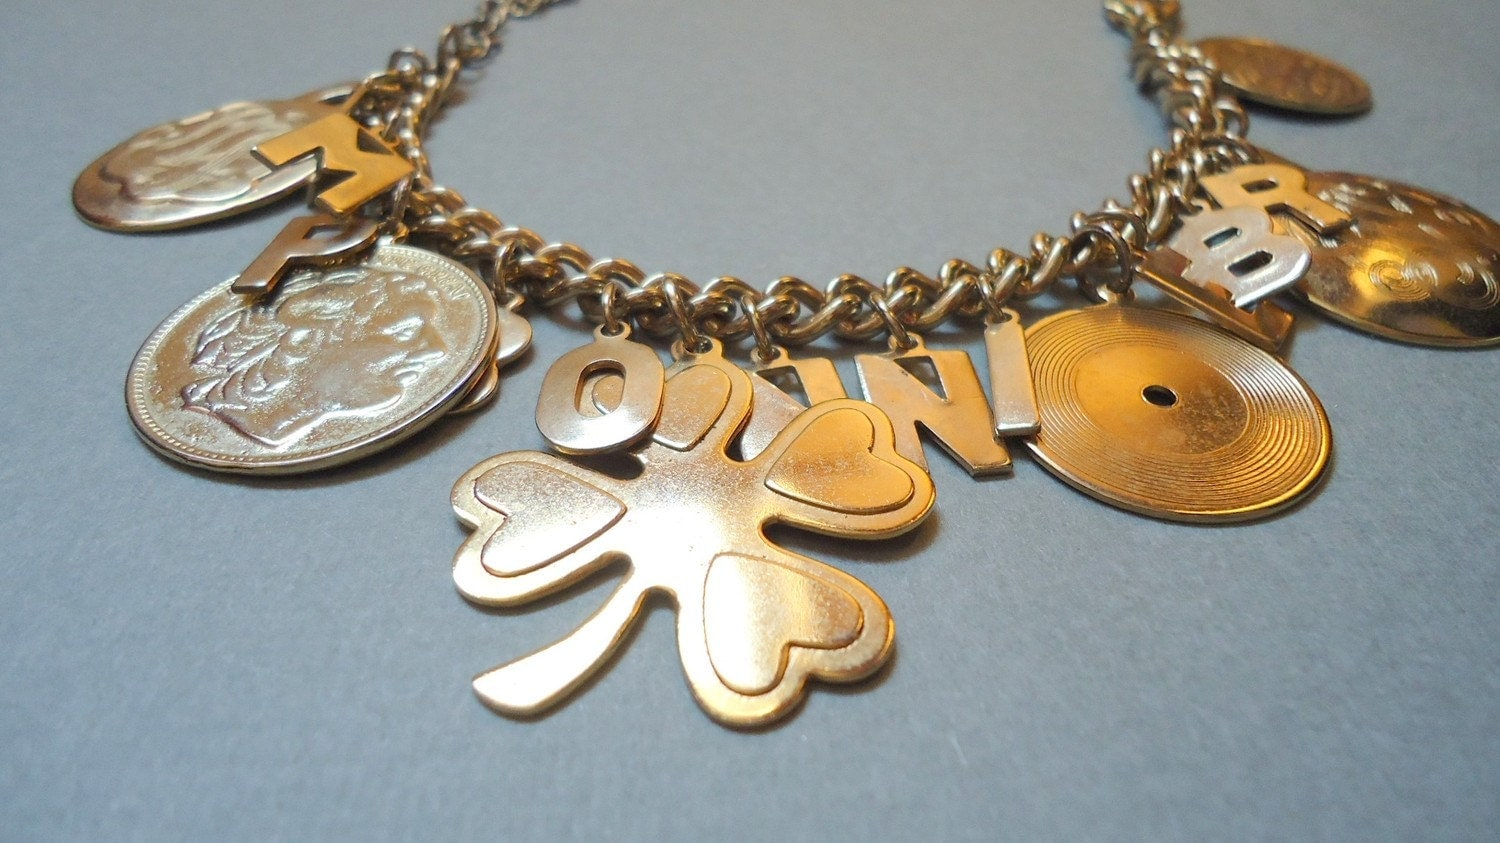 Vintage Charm Bracelet with Various Gold Charms